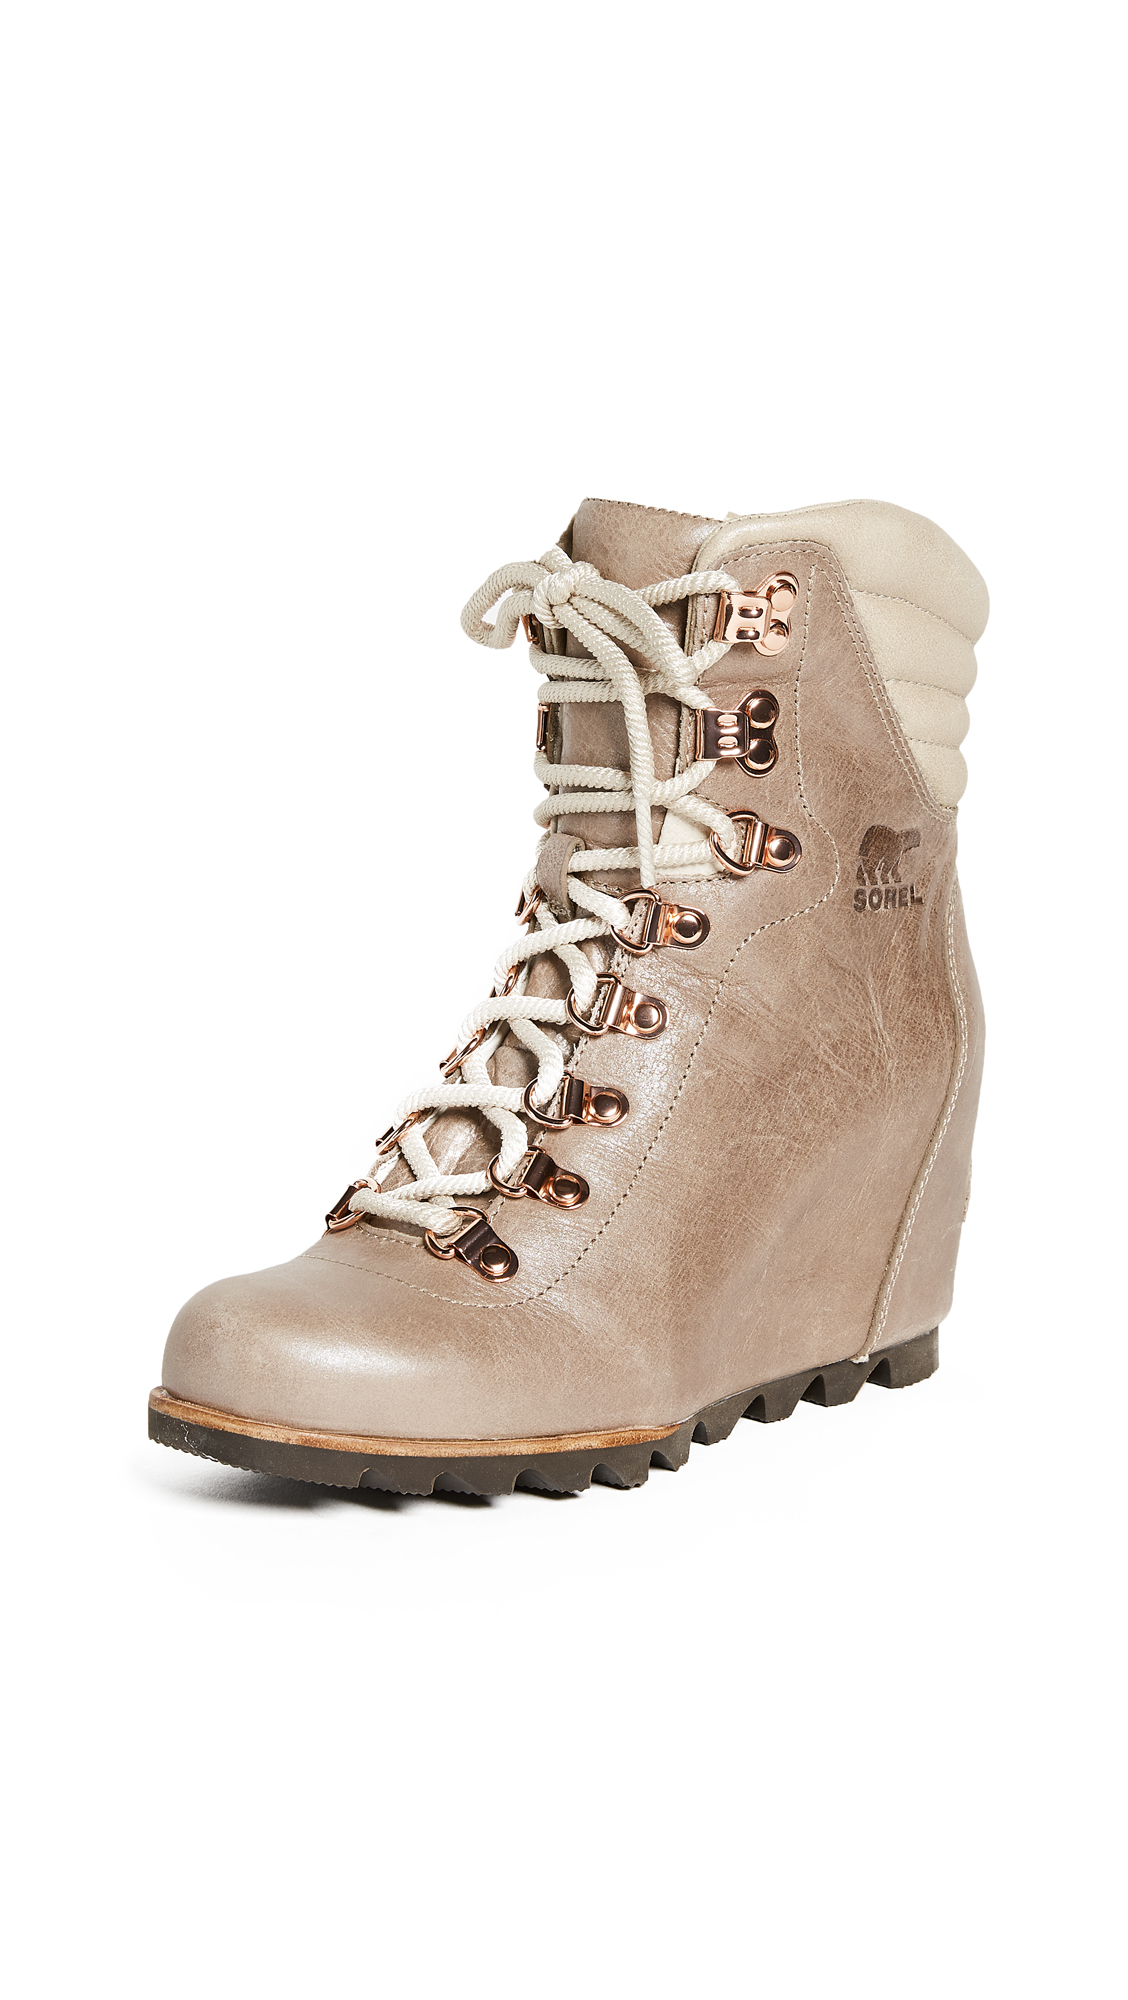 Sorel Conquest Wedge Holiday Booties - Beach/Fawn